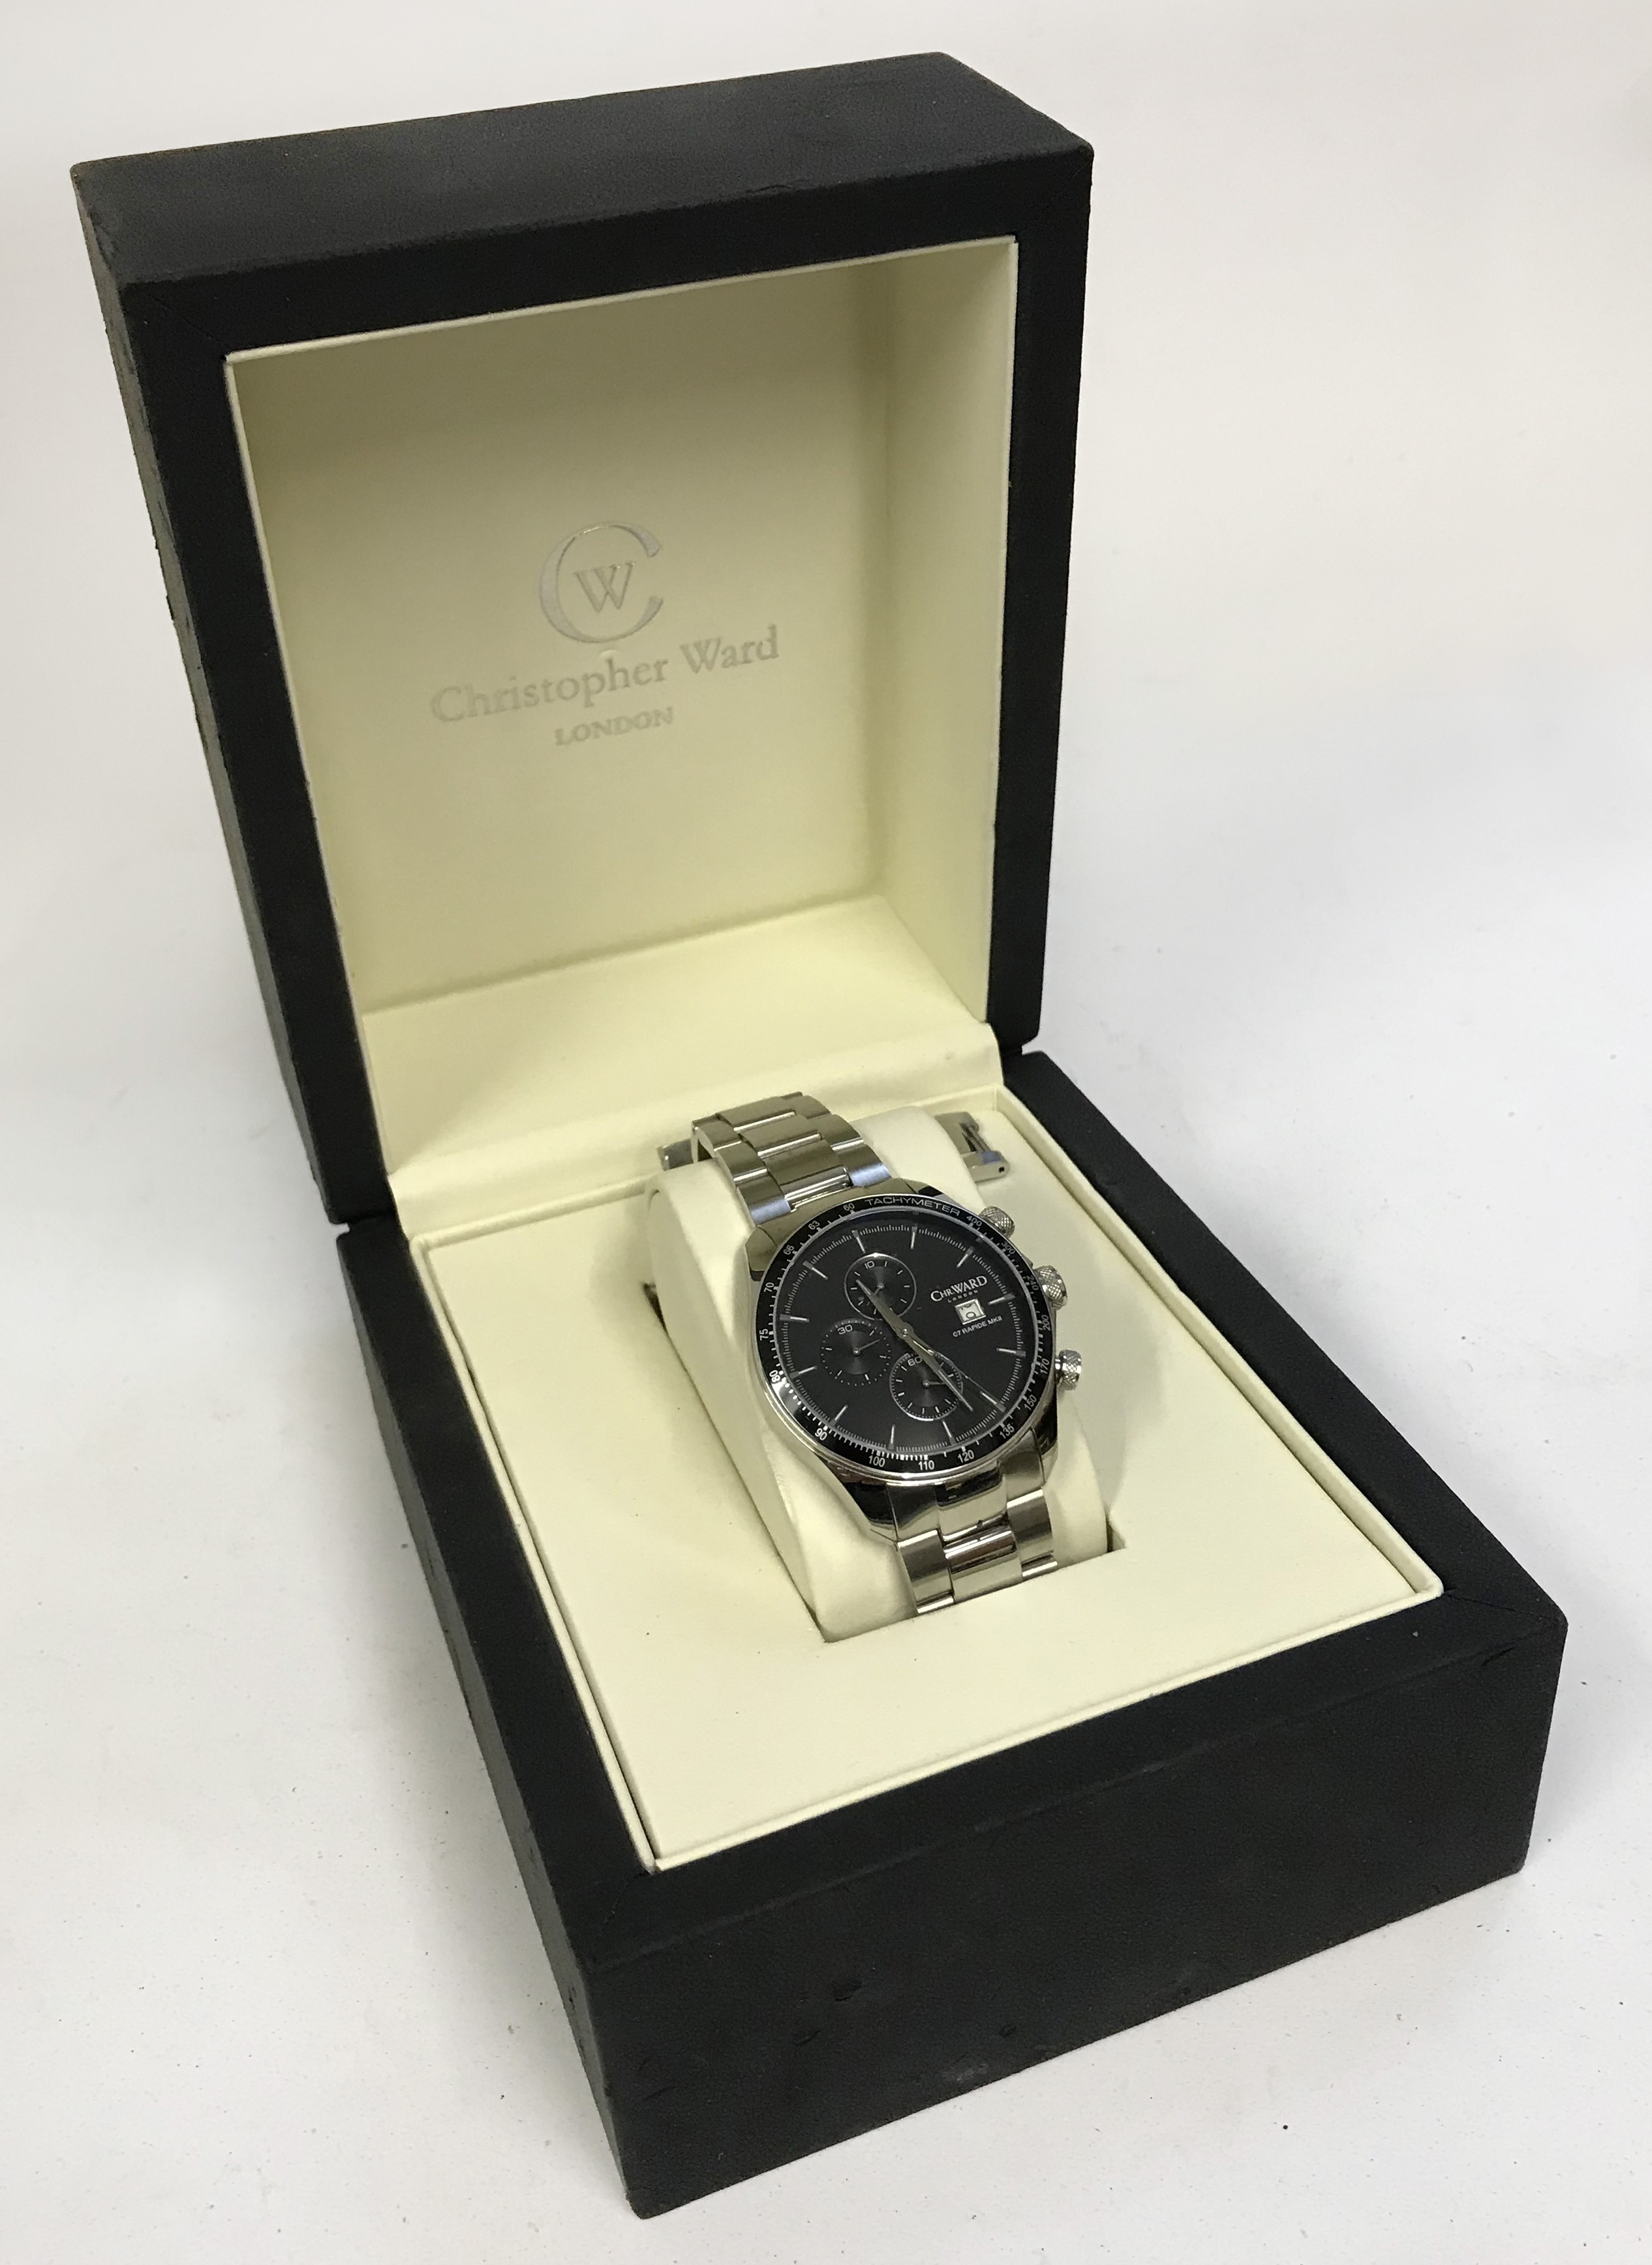 Lot 47 - Christopher Ward Boxed Wristwatch C7 MKII